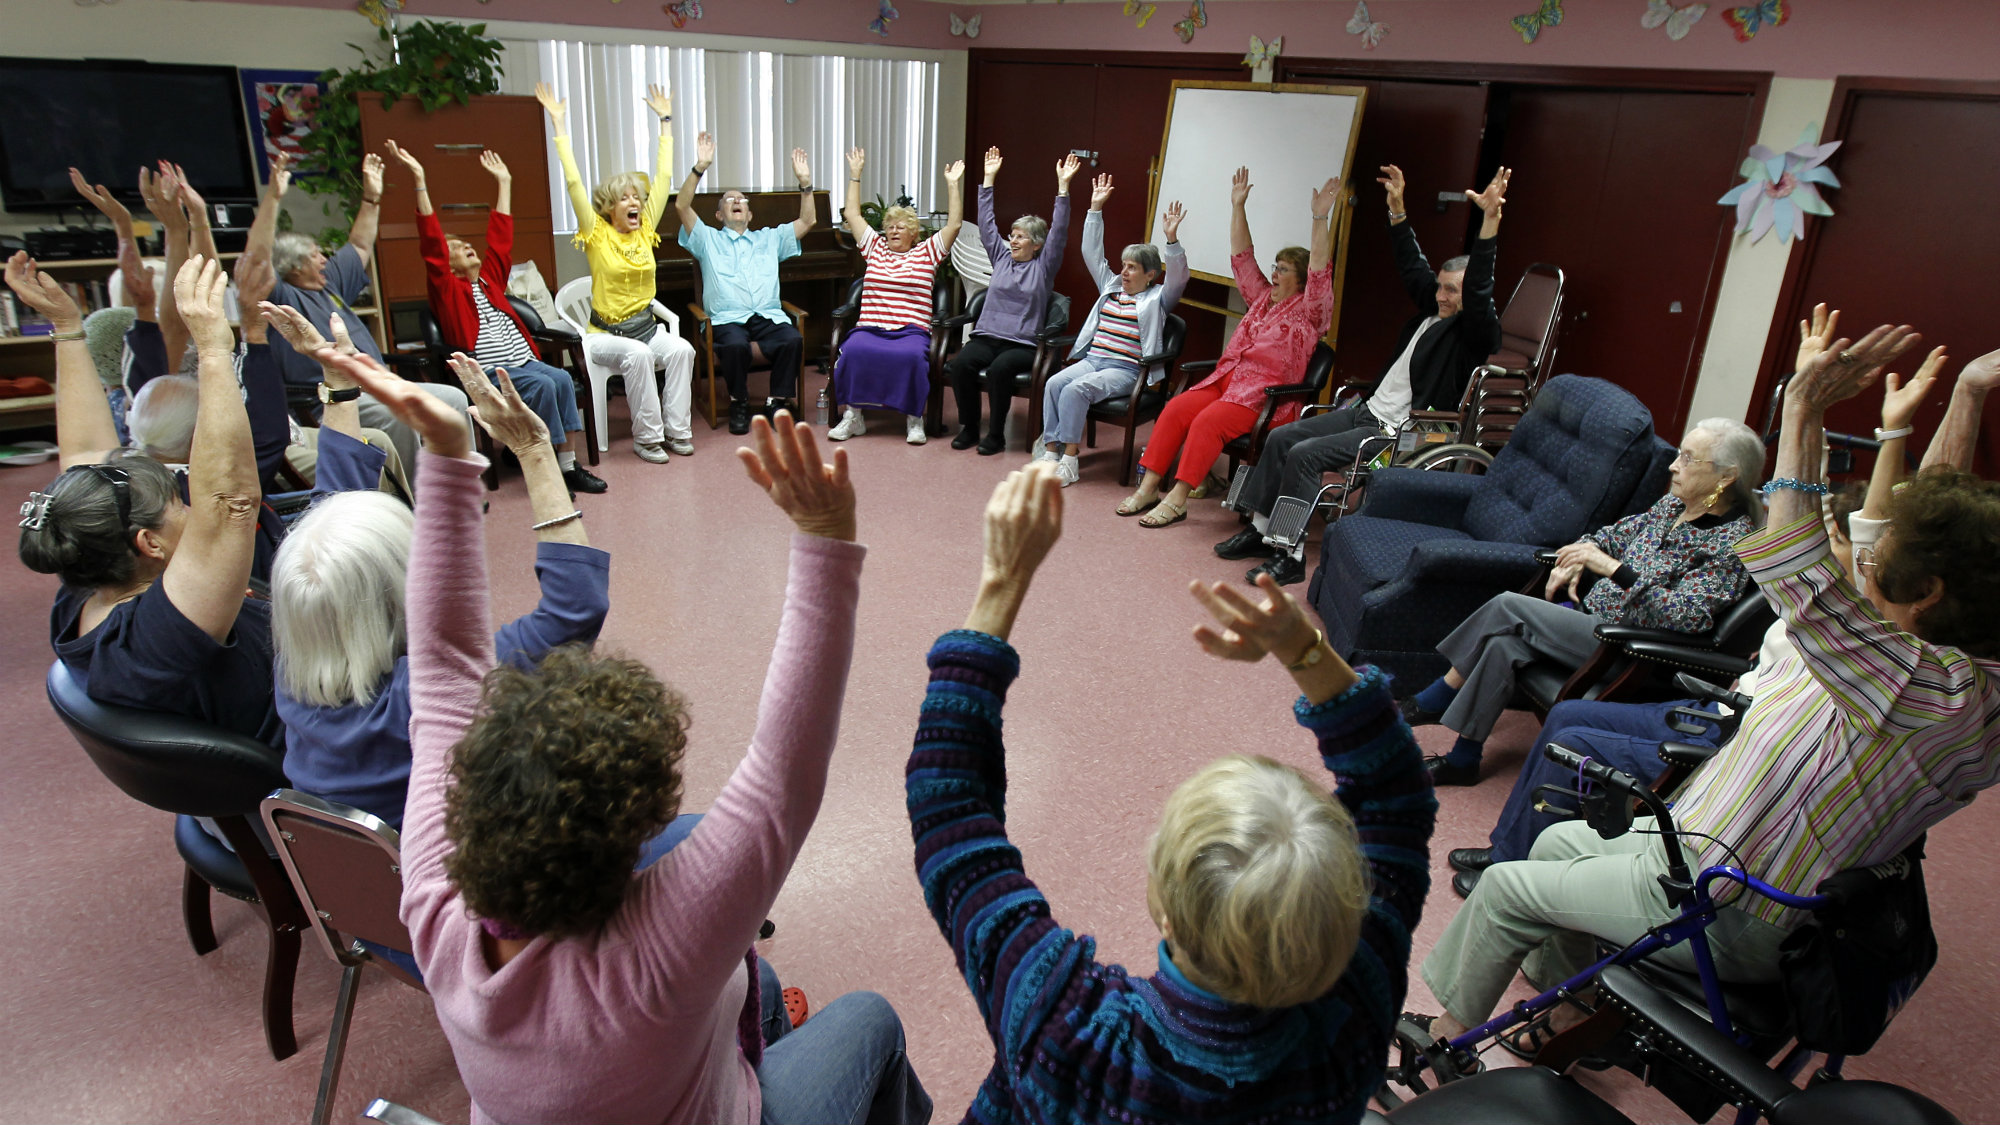 Dr. Funshine, aka Caroline Meeks, M.D. teaches a laughter therapy class to a group of seniors at the Clairmont Friendship Center in San Diego, California.